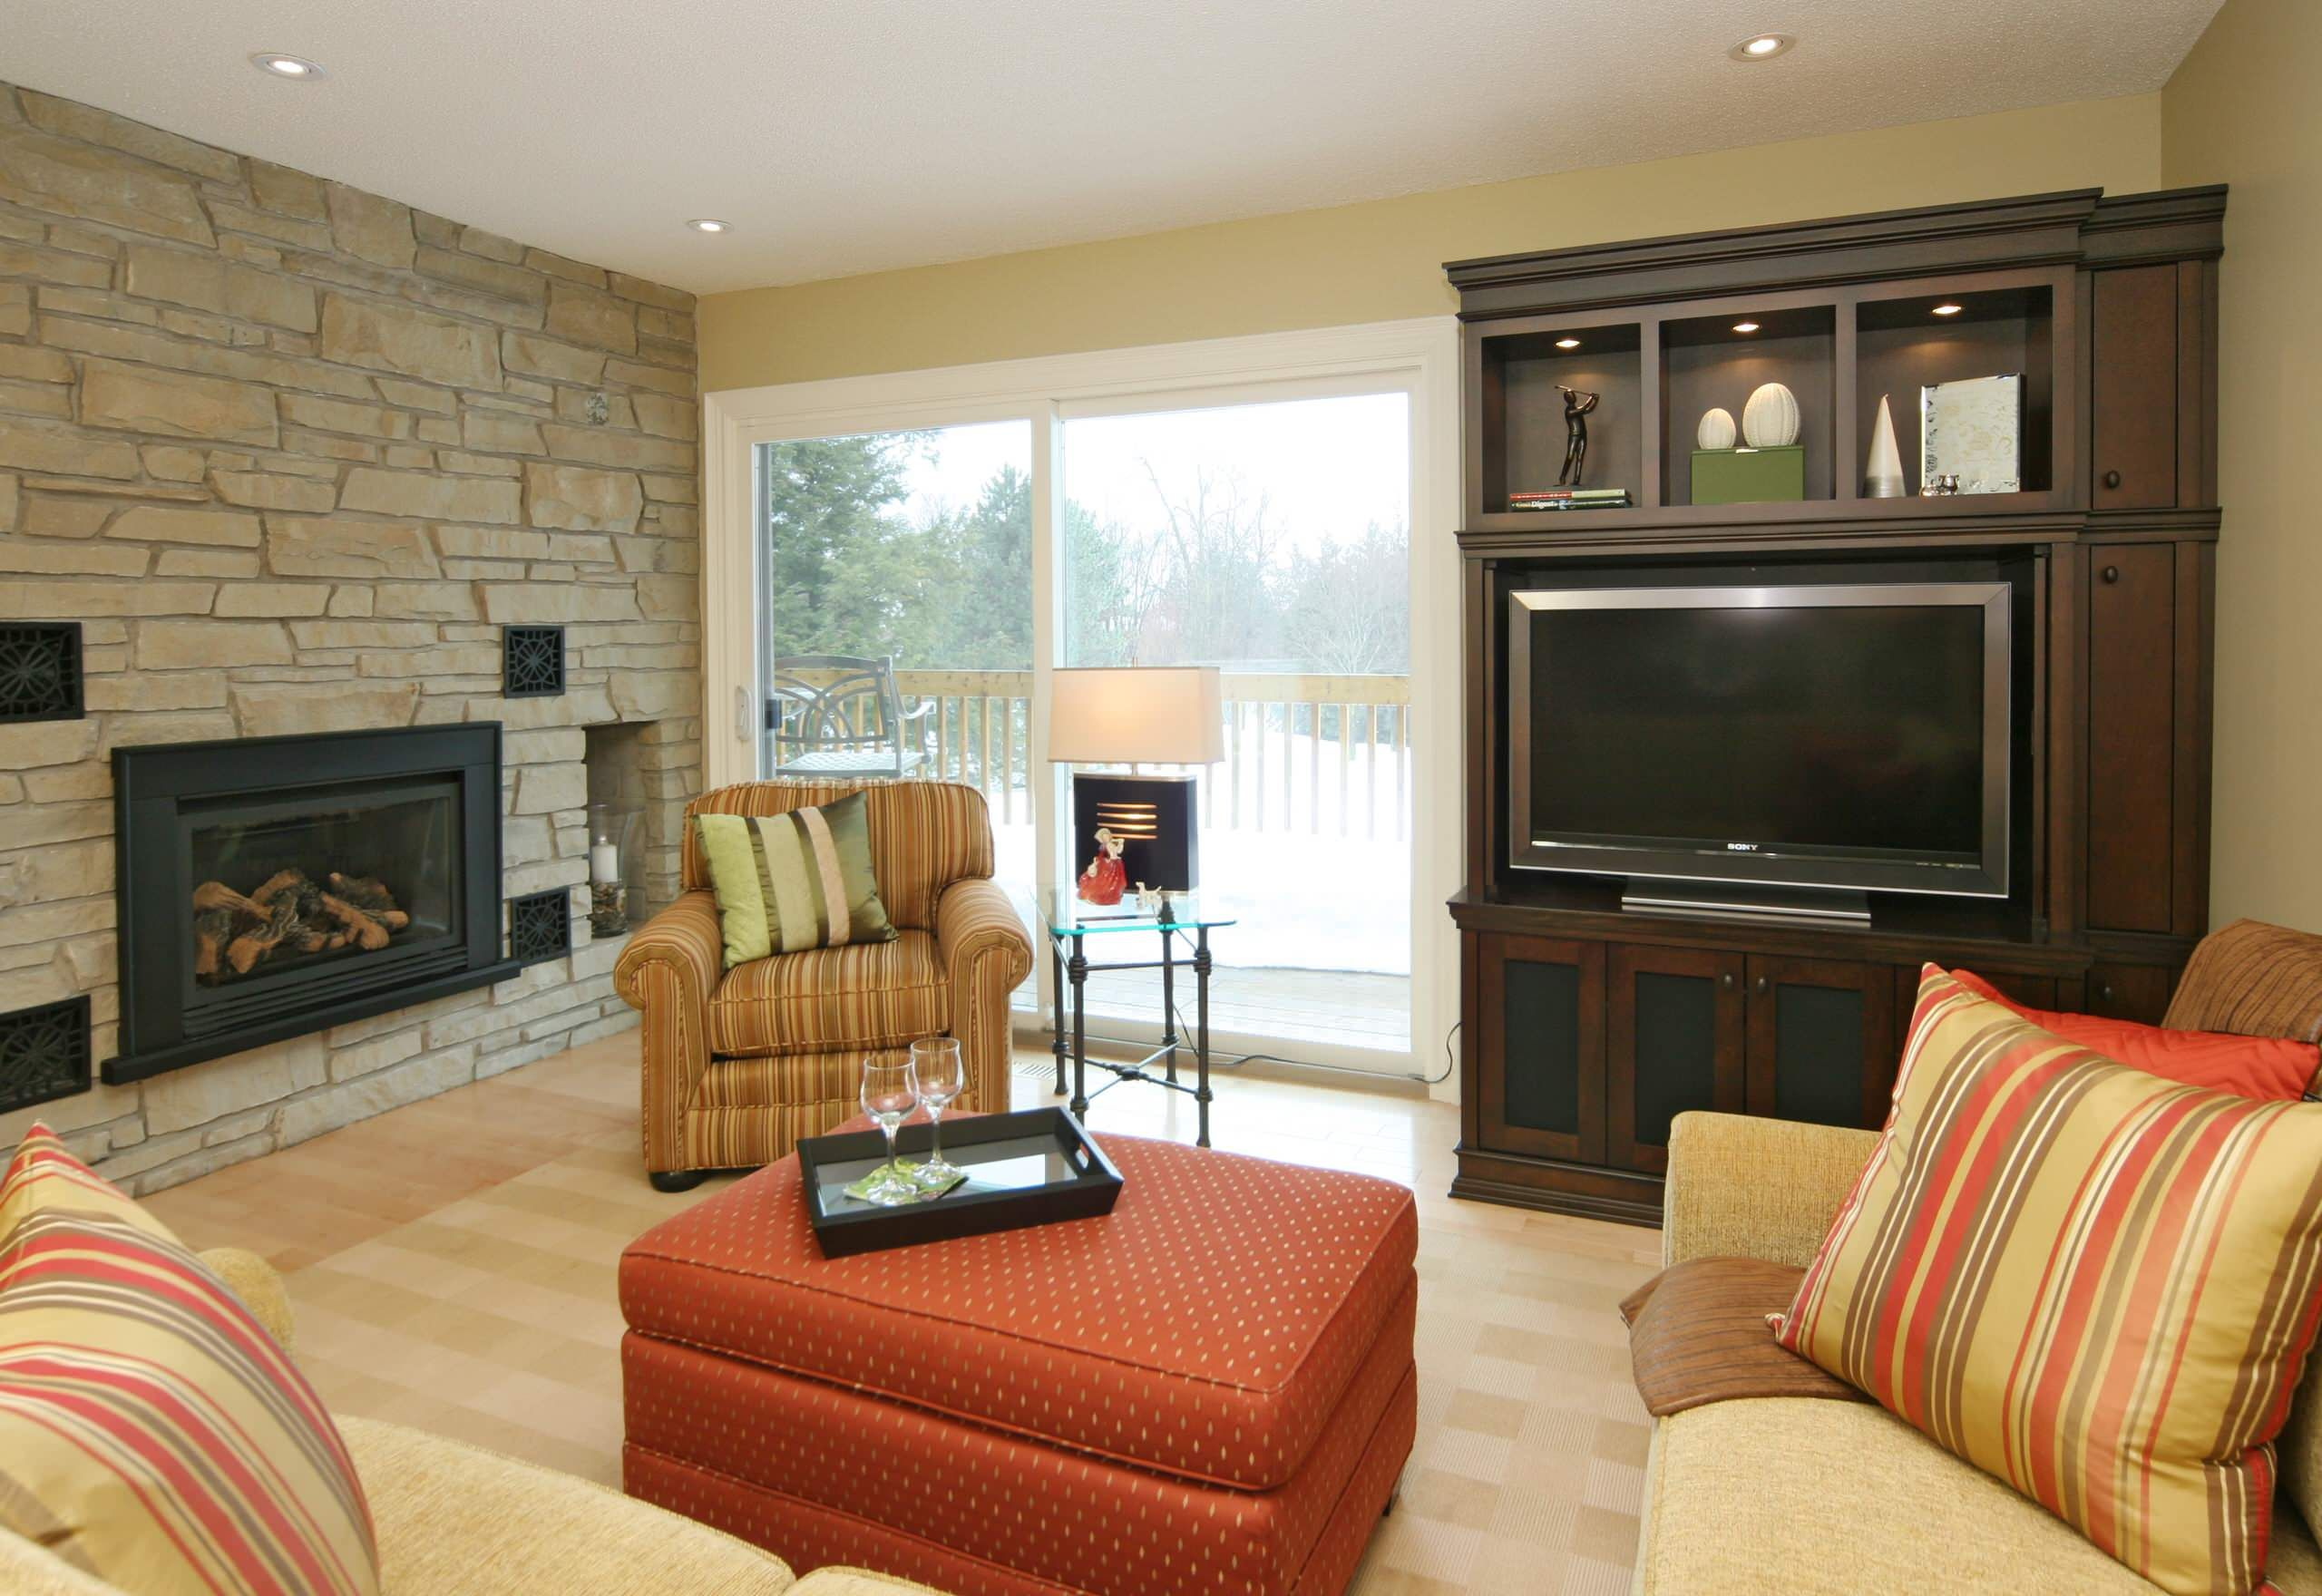 traditional family room designs. Traditional Family Room Designs With Cream Sofa And Red Coffee Table T